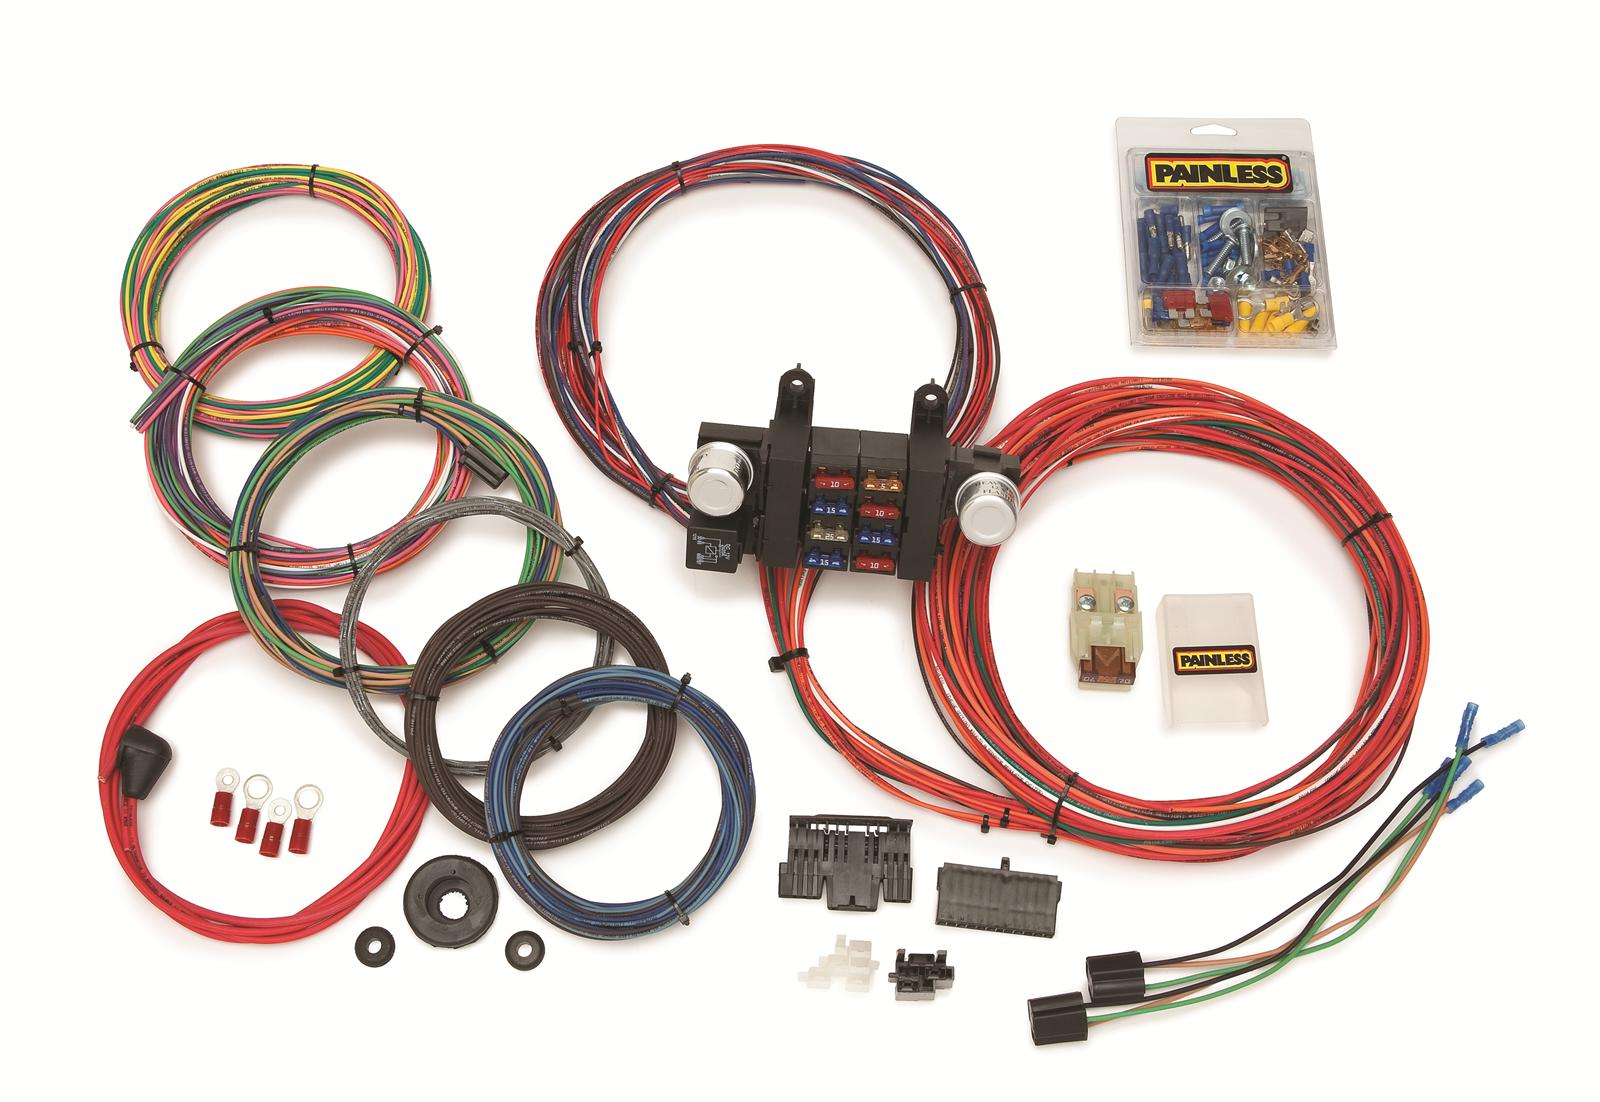 hight resolution of painless performance 18 circuit modular chassis harnesses 10307 18 circuit painless wiring harness